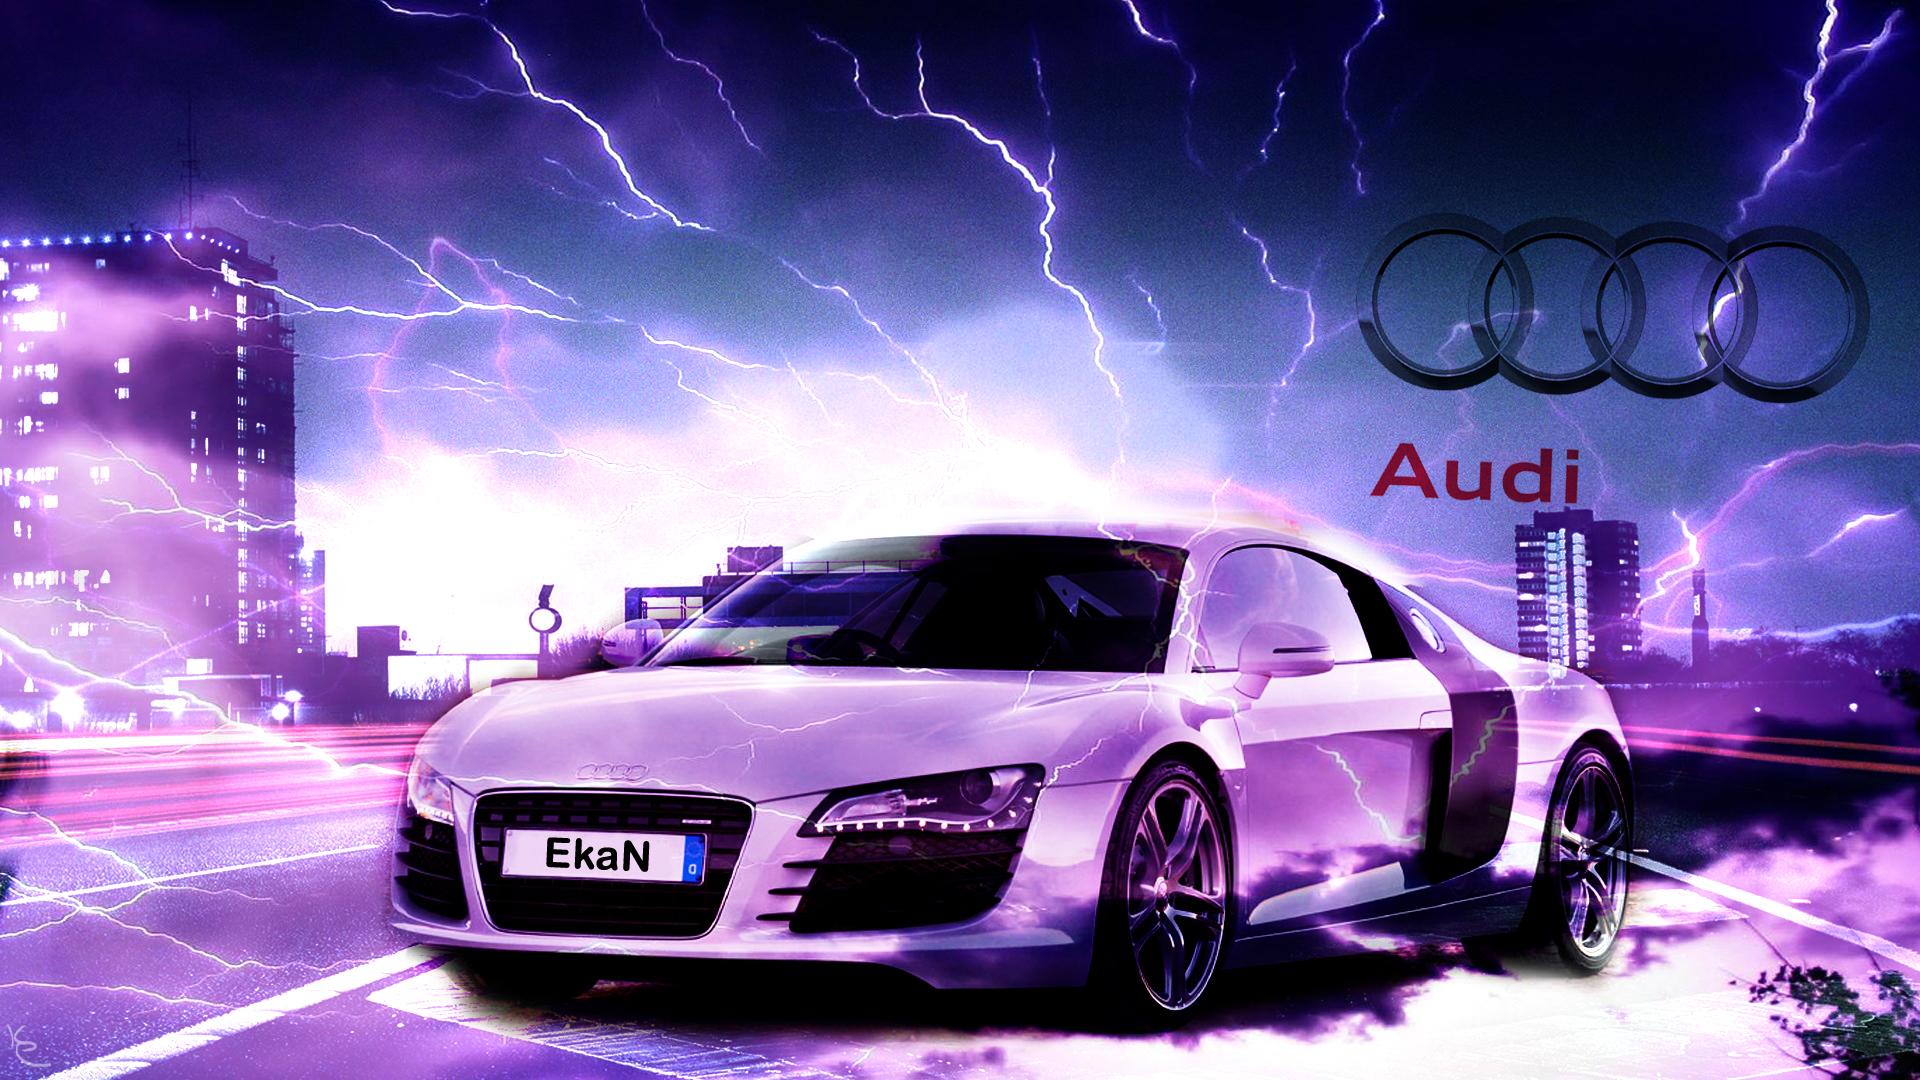 audi r8 hd wallpapers free download, audi r8 pictures best audi